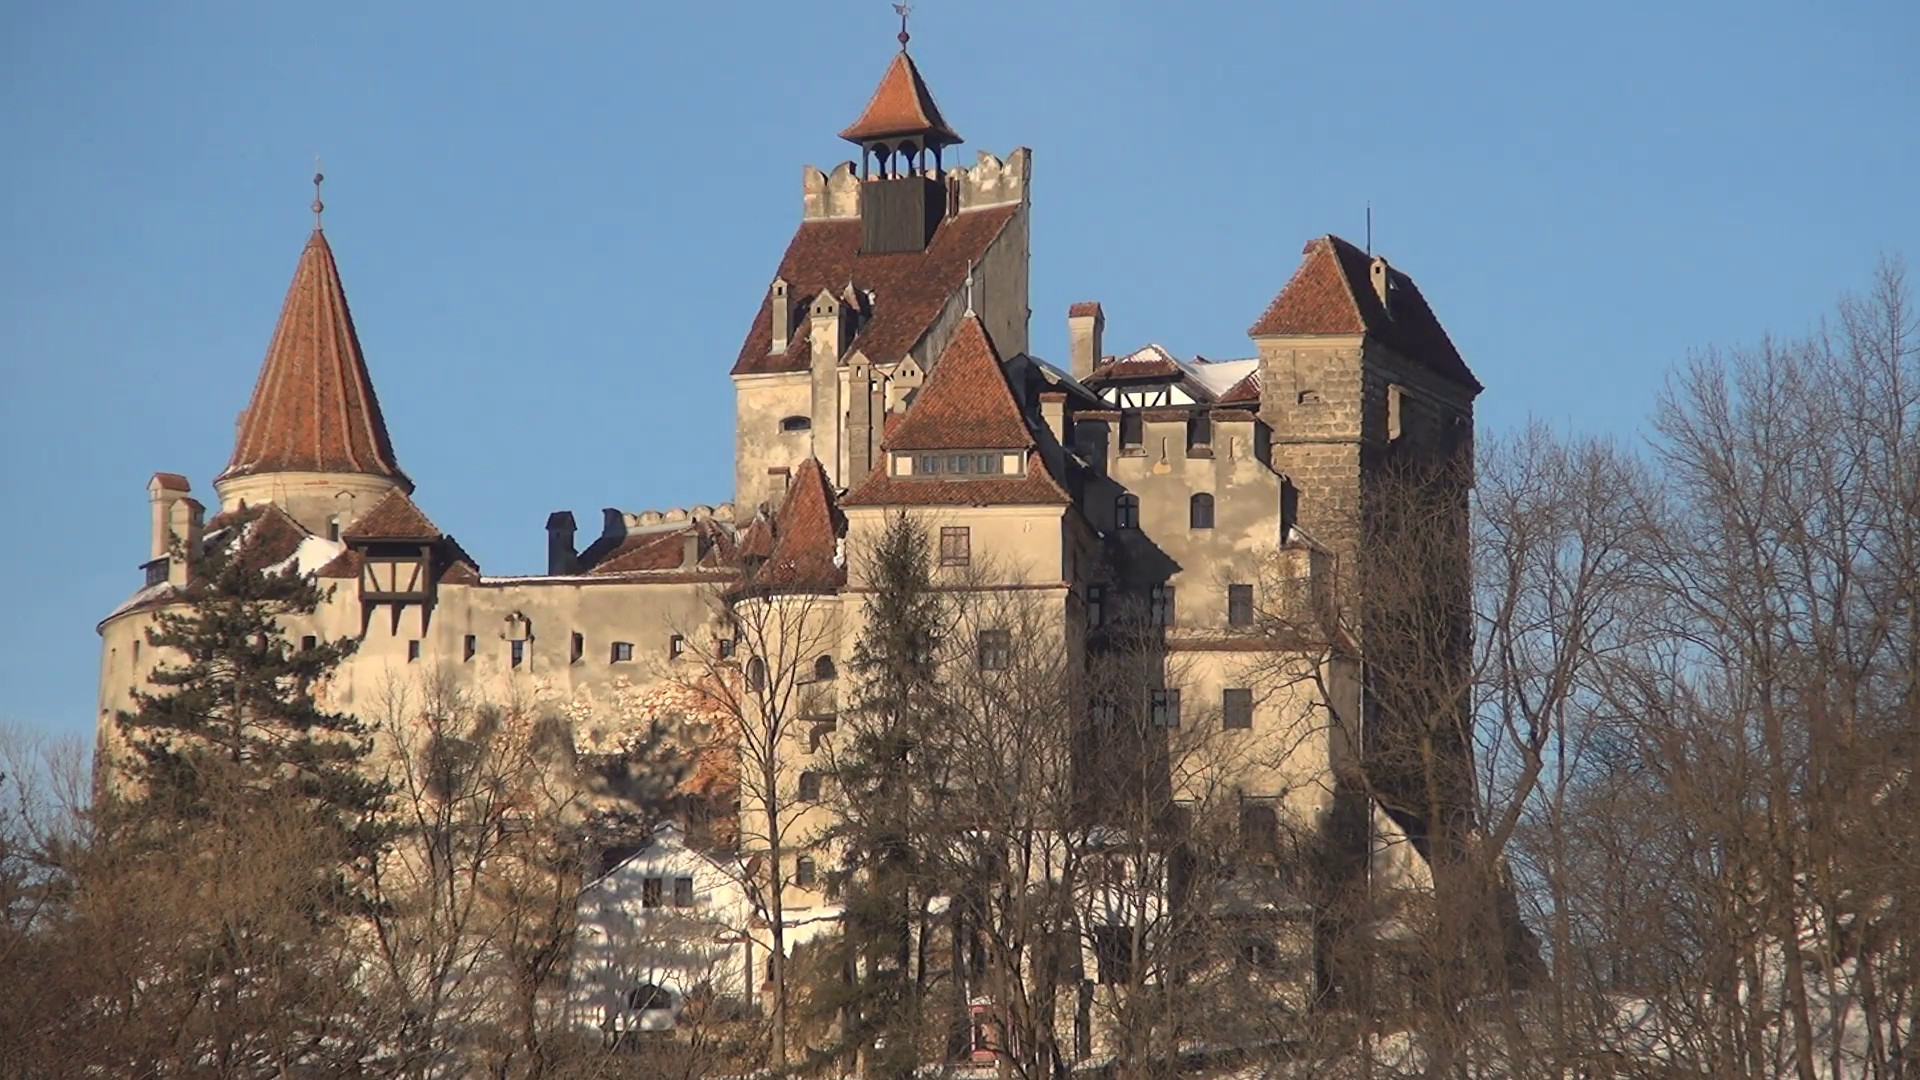 Res: 1920x1080, Legendary Castle of Dracula situated in Carpathian Mountains. Holiday  season view Stock Video Footage - Videoblocks